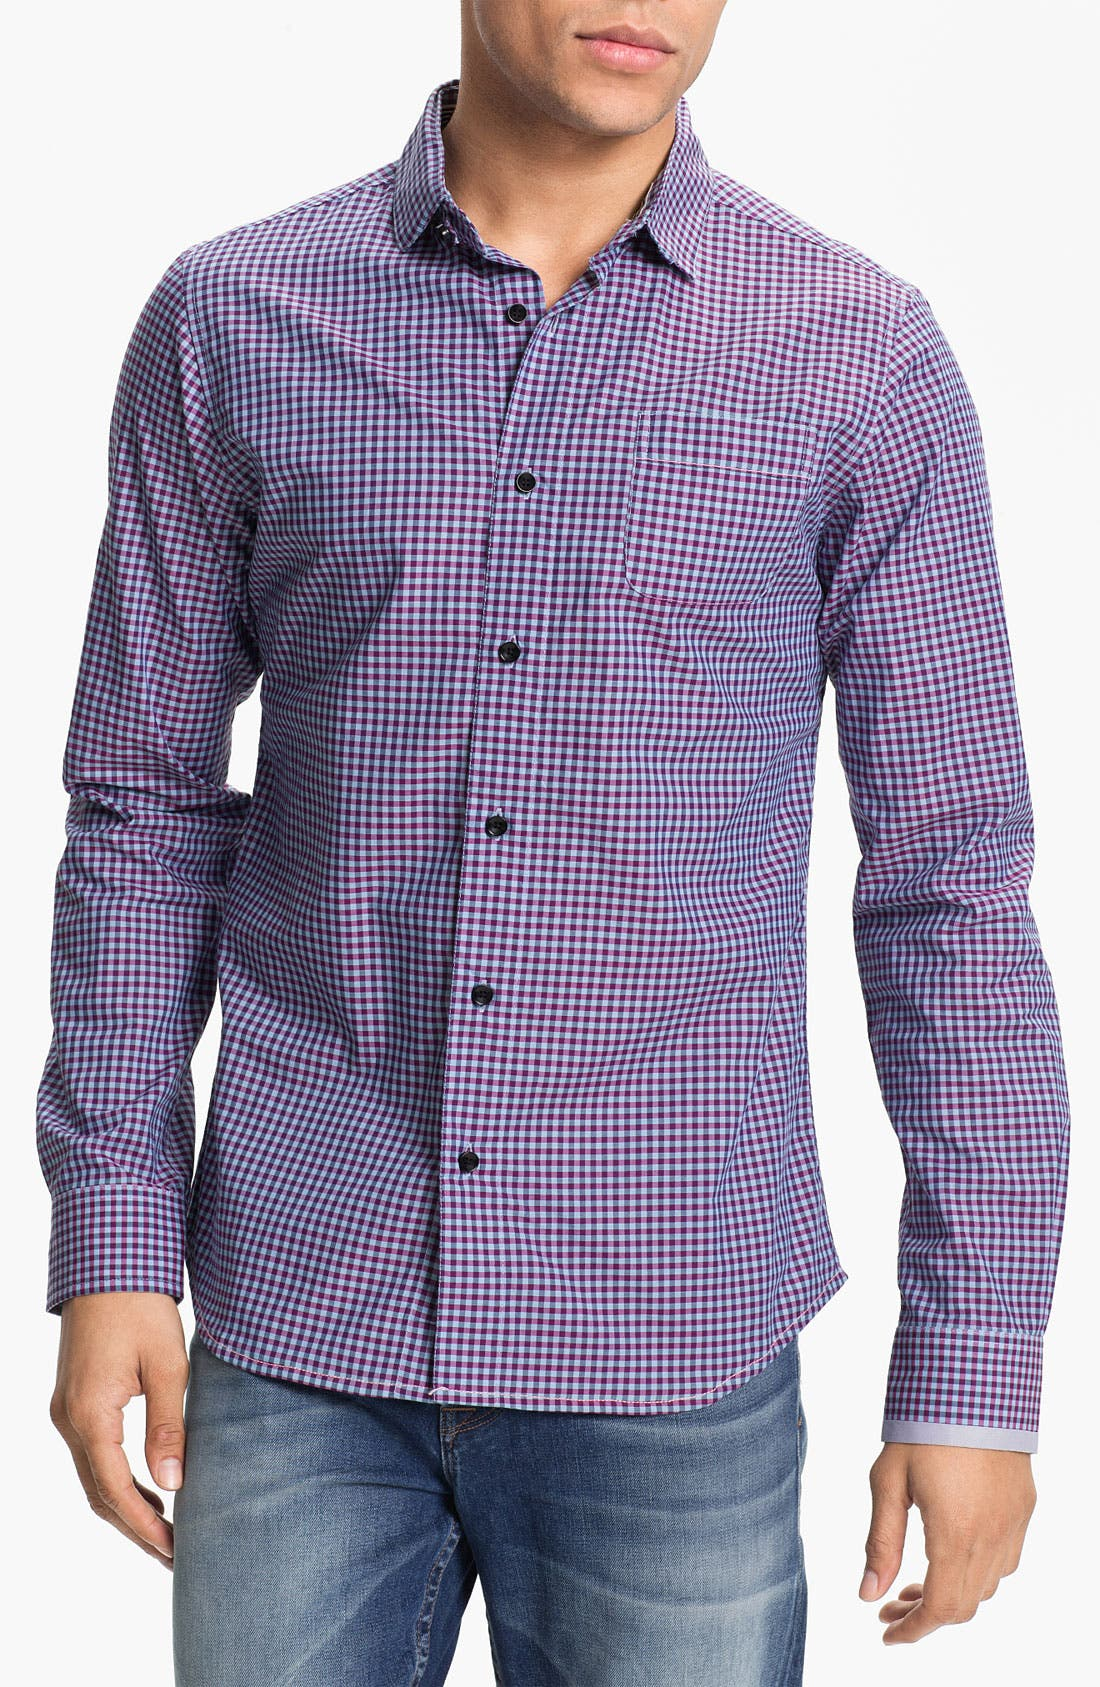 Alternate Image 1 Selected - Descendant of Thieves Gingham Shirt